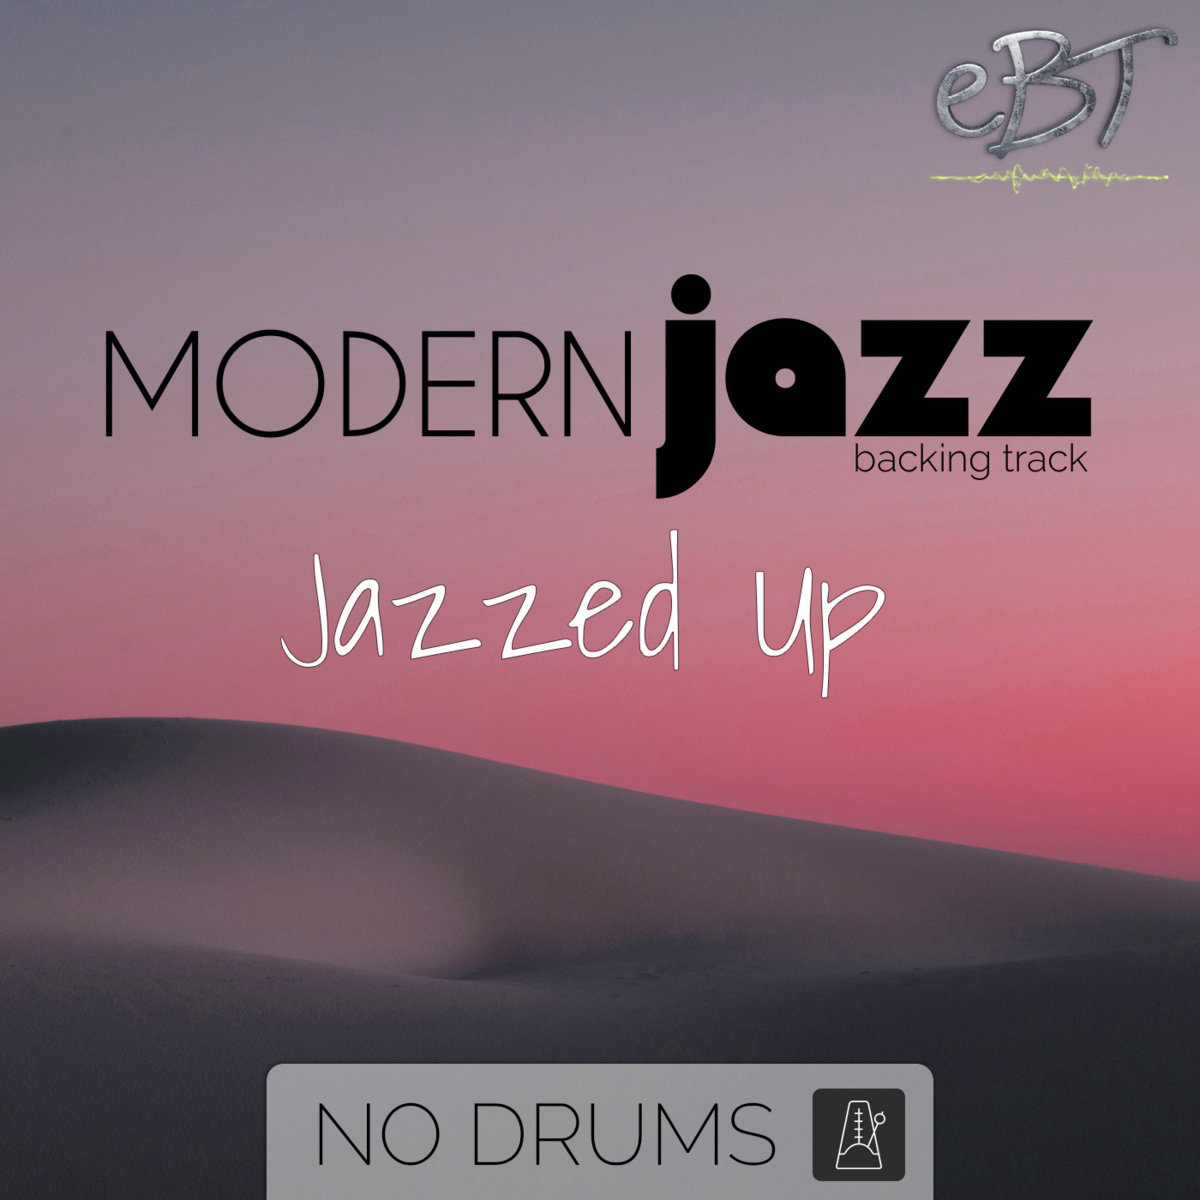 Jazzed Up [NO DRUMS w/click] | Elite Backing Tracks